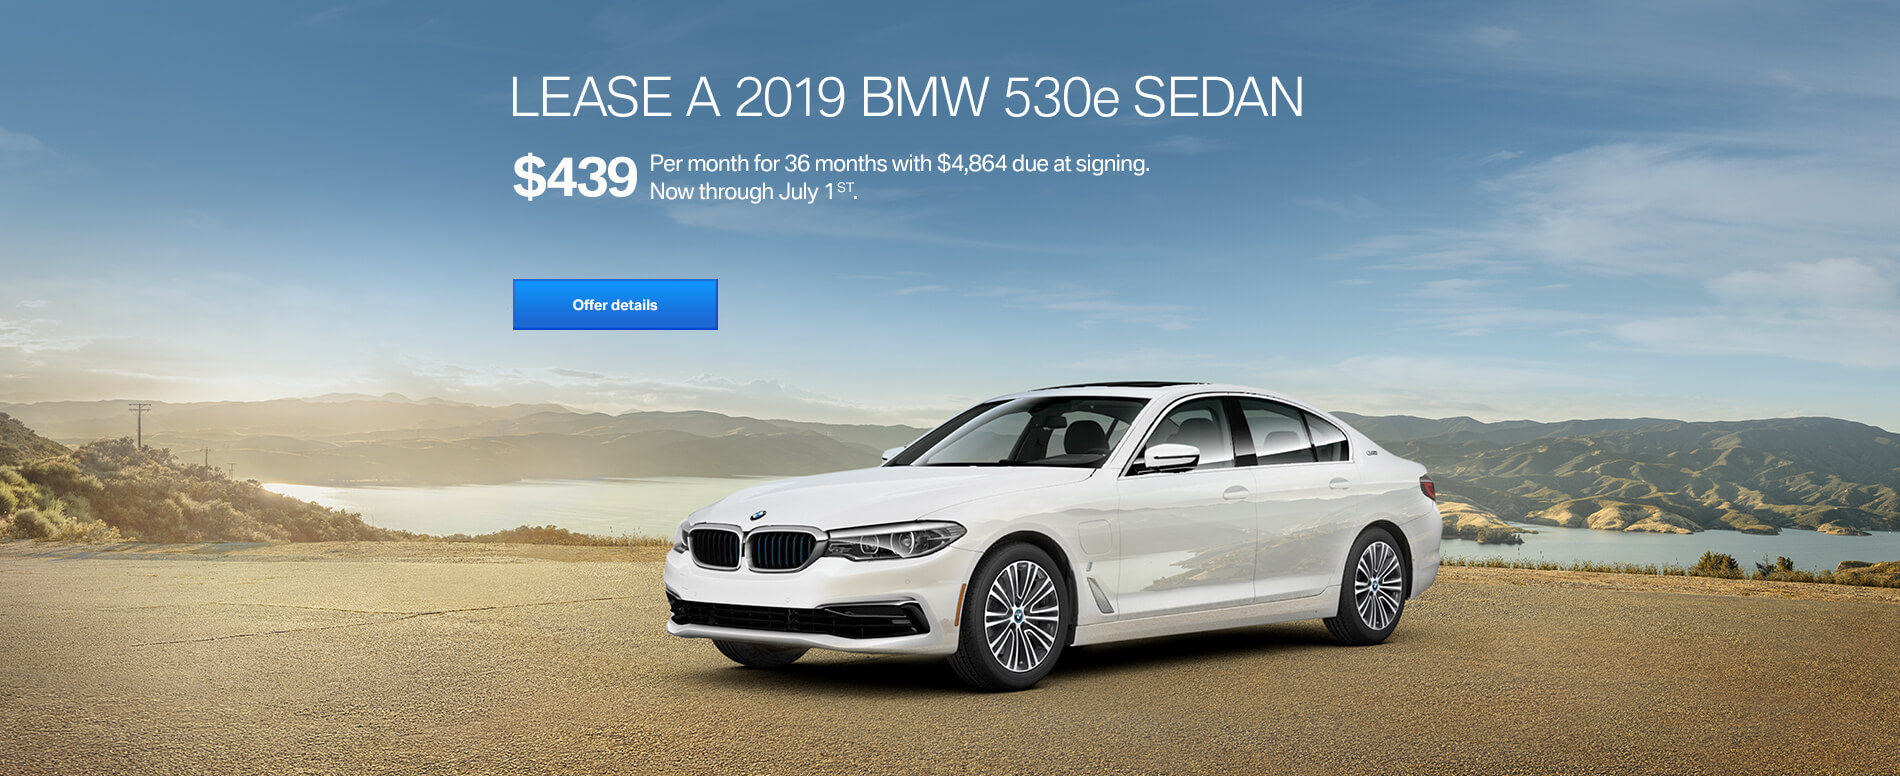 LEASE A 2019 BMW 530e FOR $439/MONTH FOR 36 MONTHS WITH $4,864 D